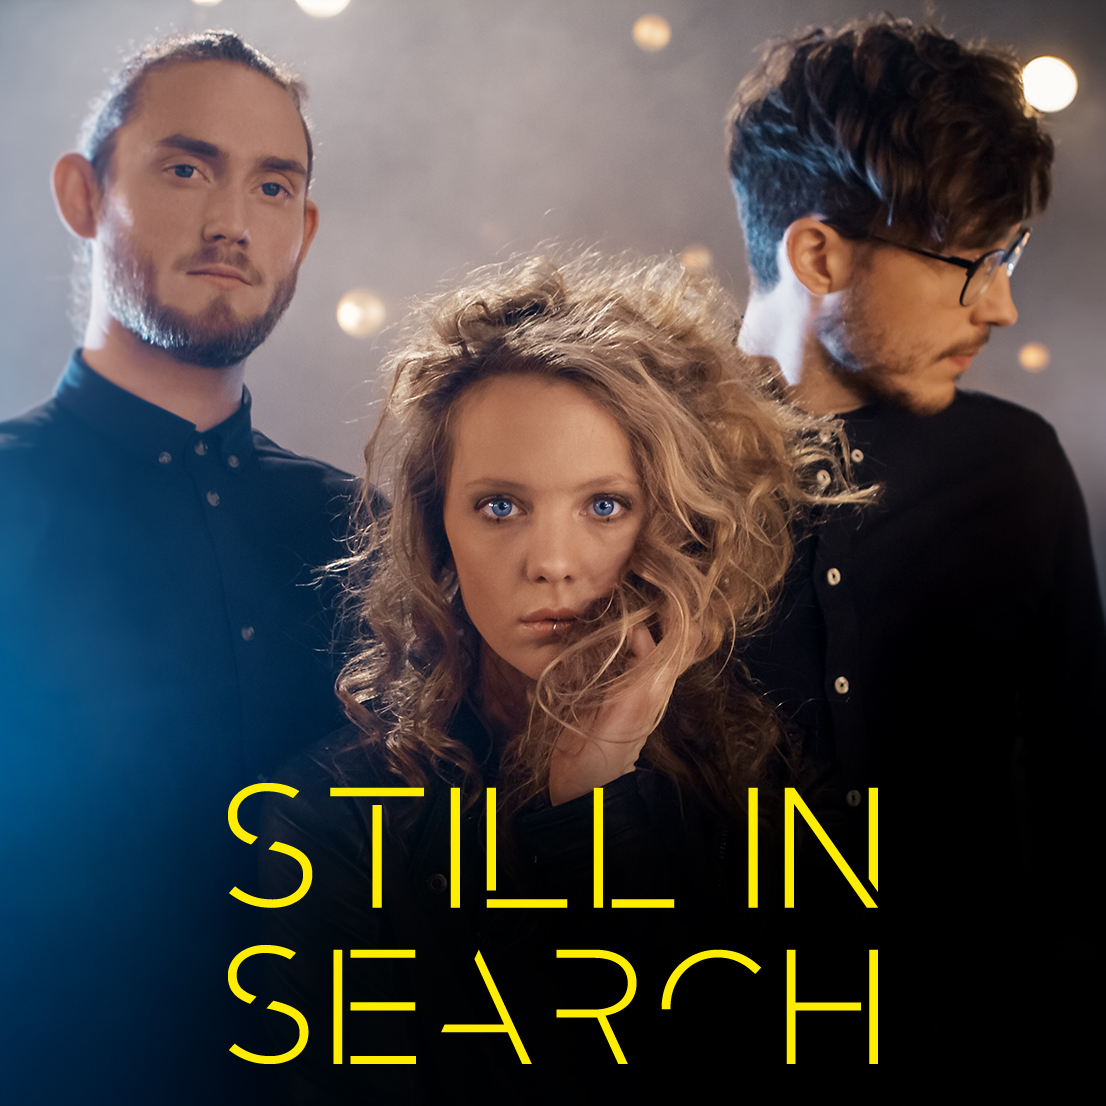 Image of still in search